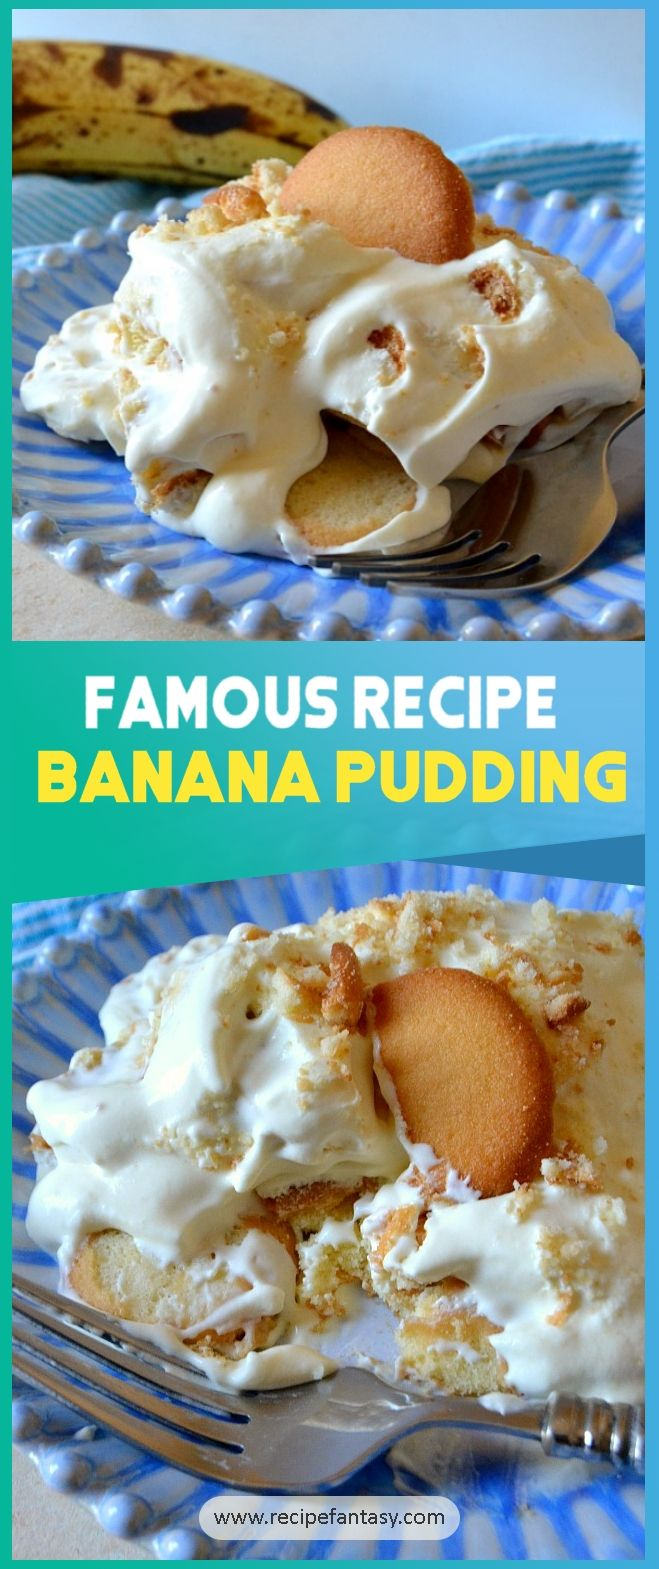 Ingredients And Instruction For Make Famous Banana Pudding Famous Banana Pudding Dessert Recipes Dess Banana Pudding Dessert Recipes Easy Dessert Recipes